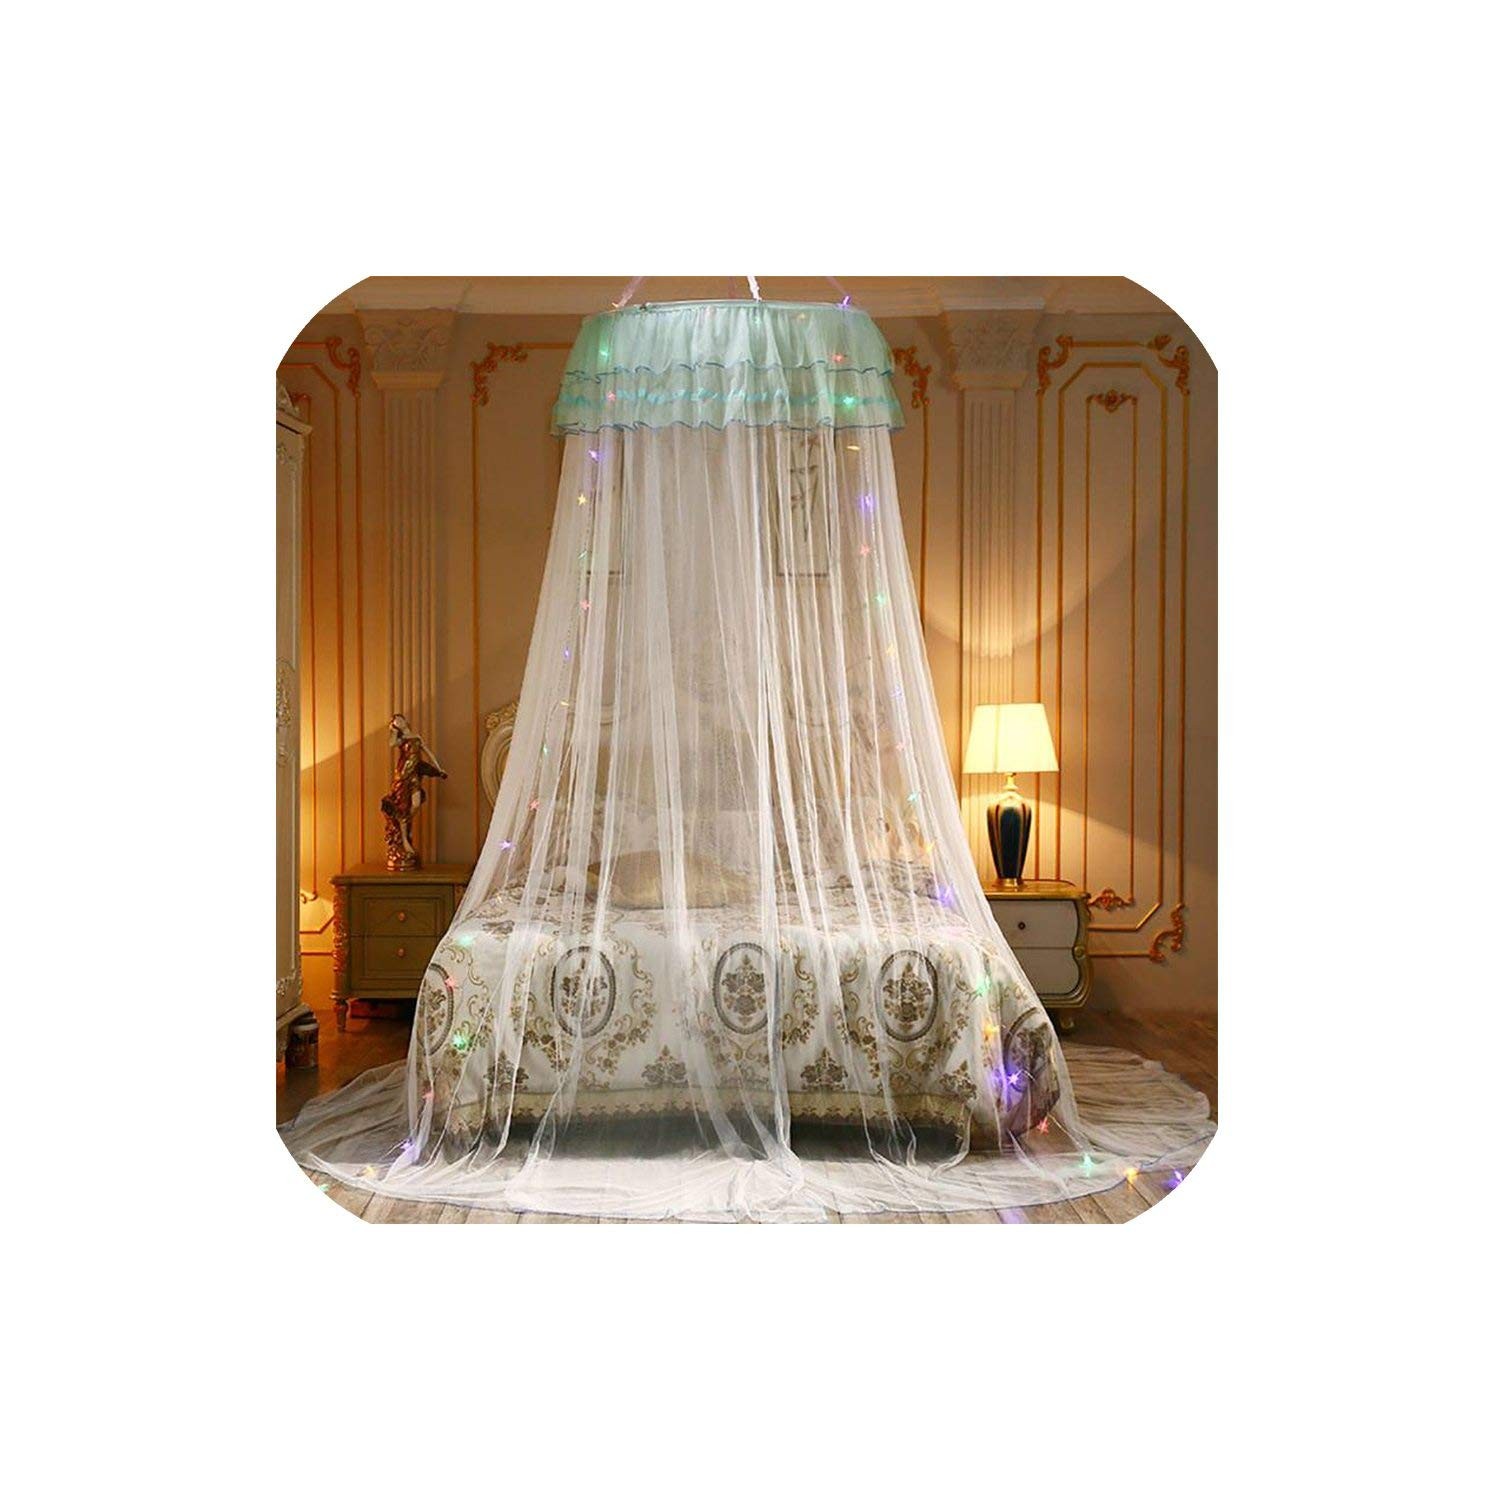 Elegant Canopy Mosquito Net for Double Bed Mosquito Repellent Tent Insect Reject Canopy Bed Curtain Bed Tent,5